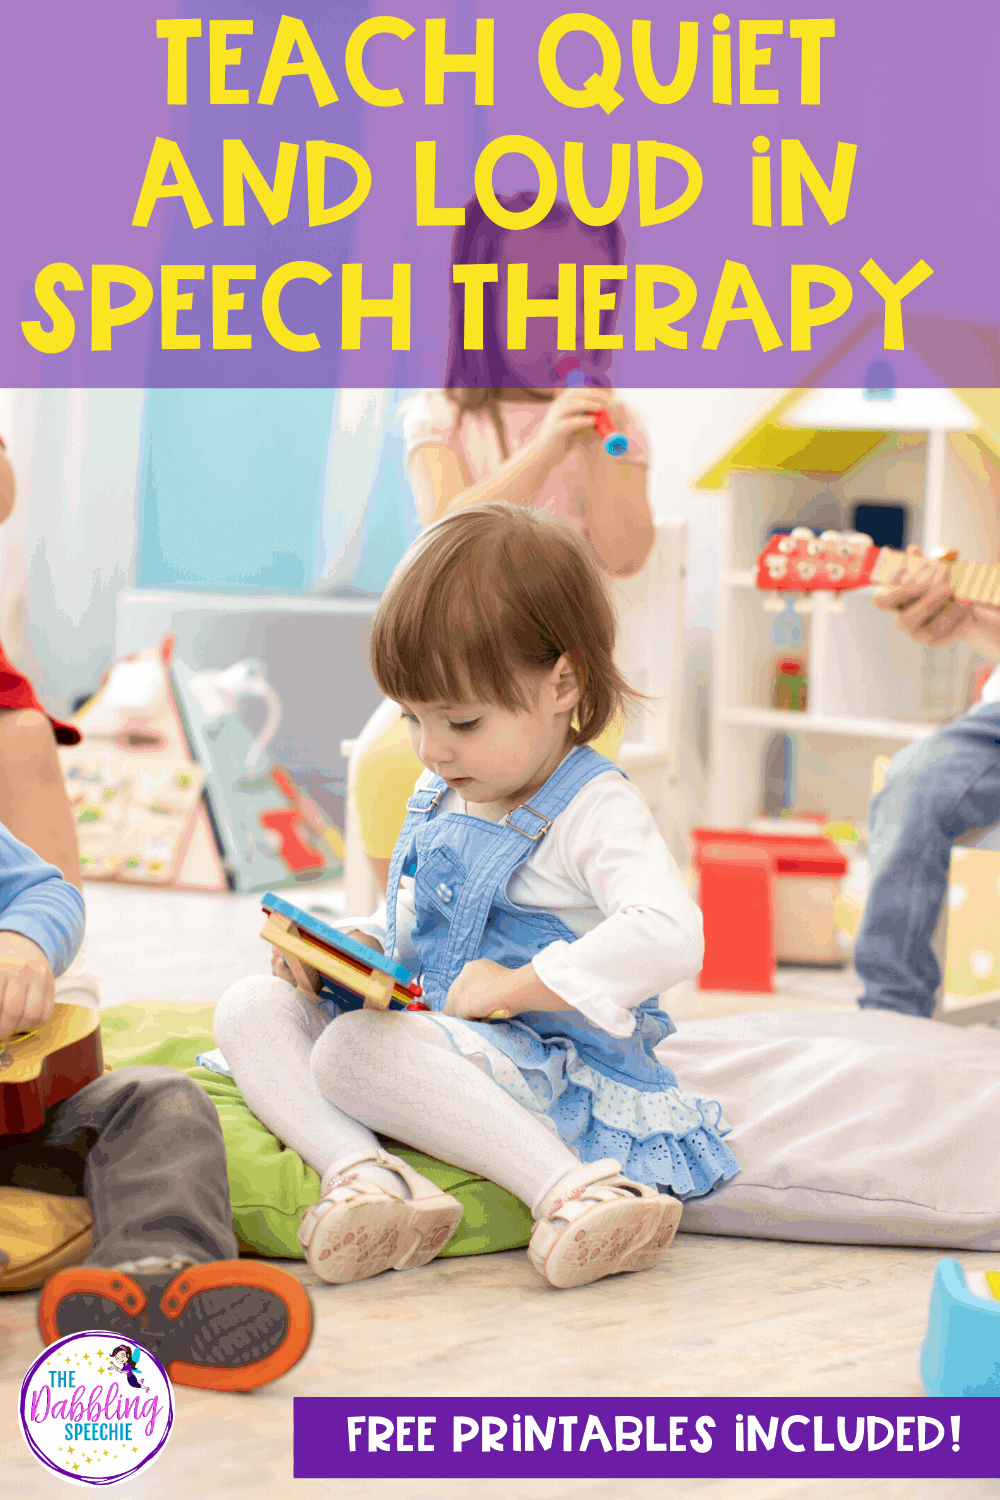 Here are some great sound activities for kids that you can use in your small group and push-in lessons as a speech therapist. Want to have activities that support your Unique curriculum? Check out this blog post to get sound activities to teach science, vocabulary and descriptive language.